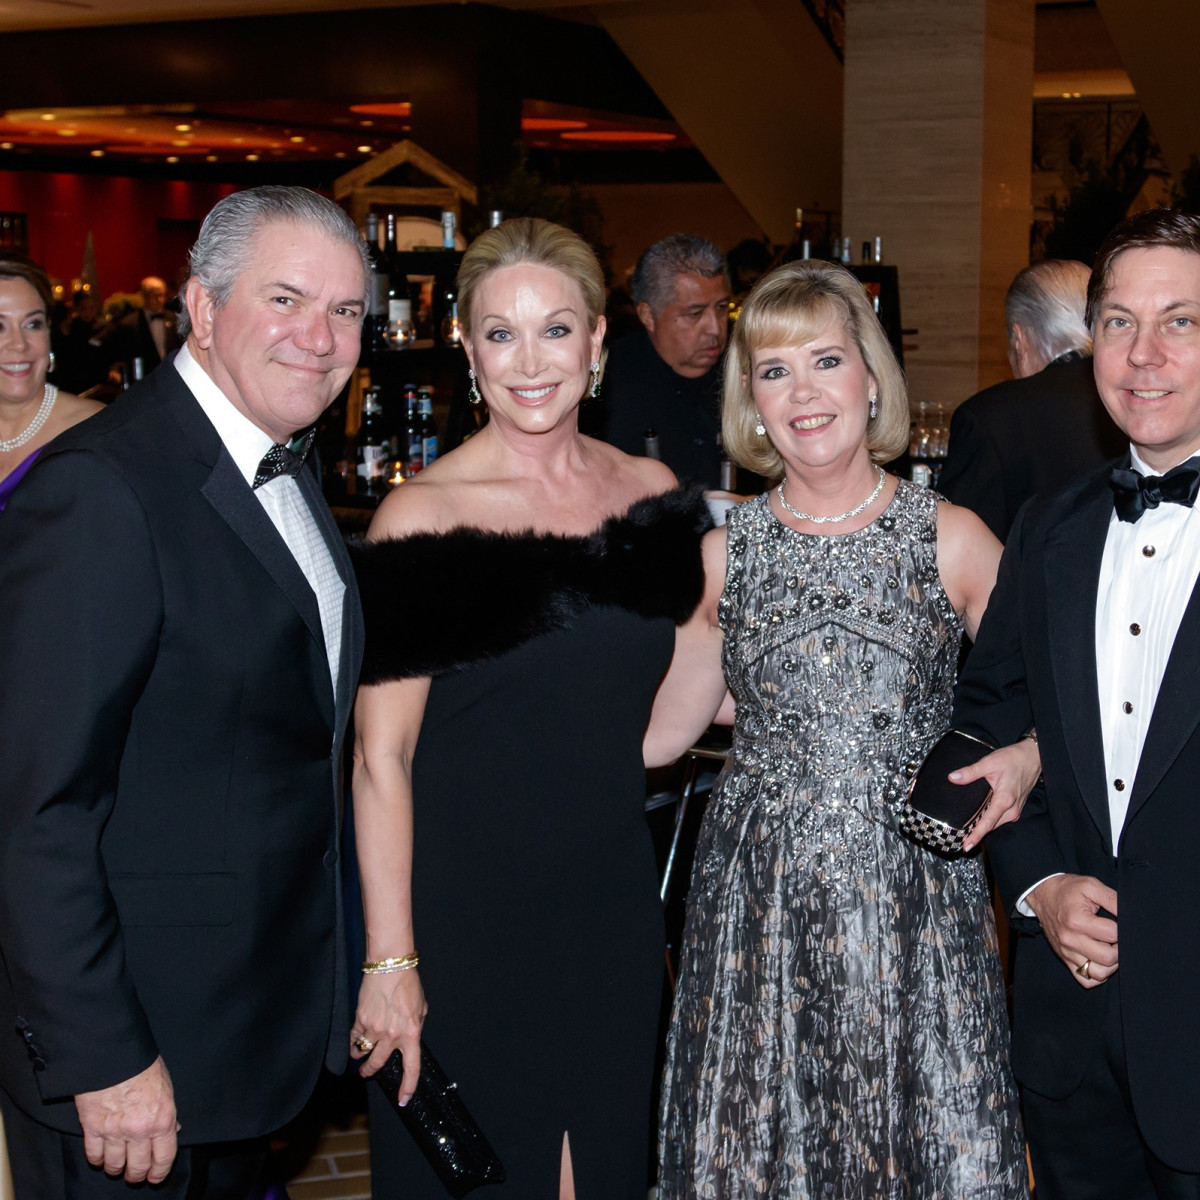 Greg Hext, Kim Hext, Christie Carter, Hudson Weichsel, Crystal Charity Ball 2017